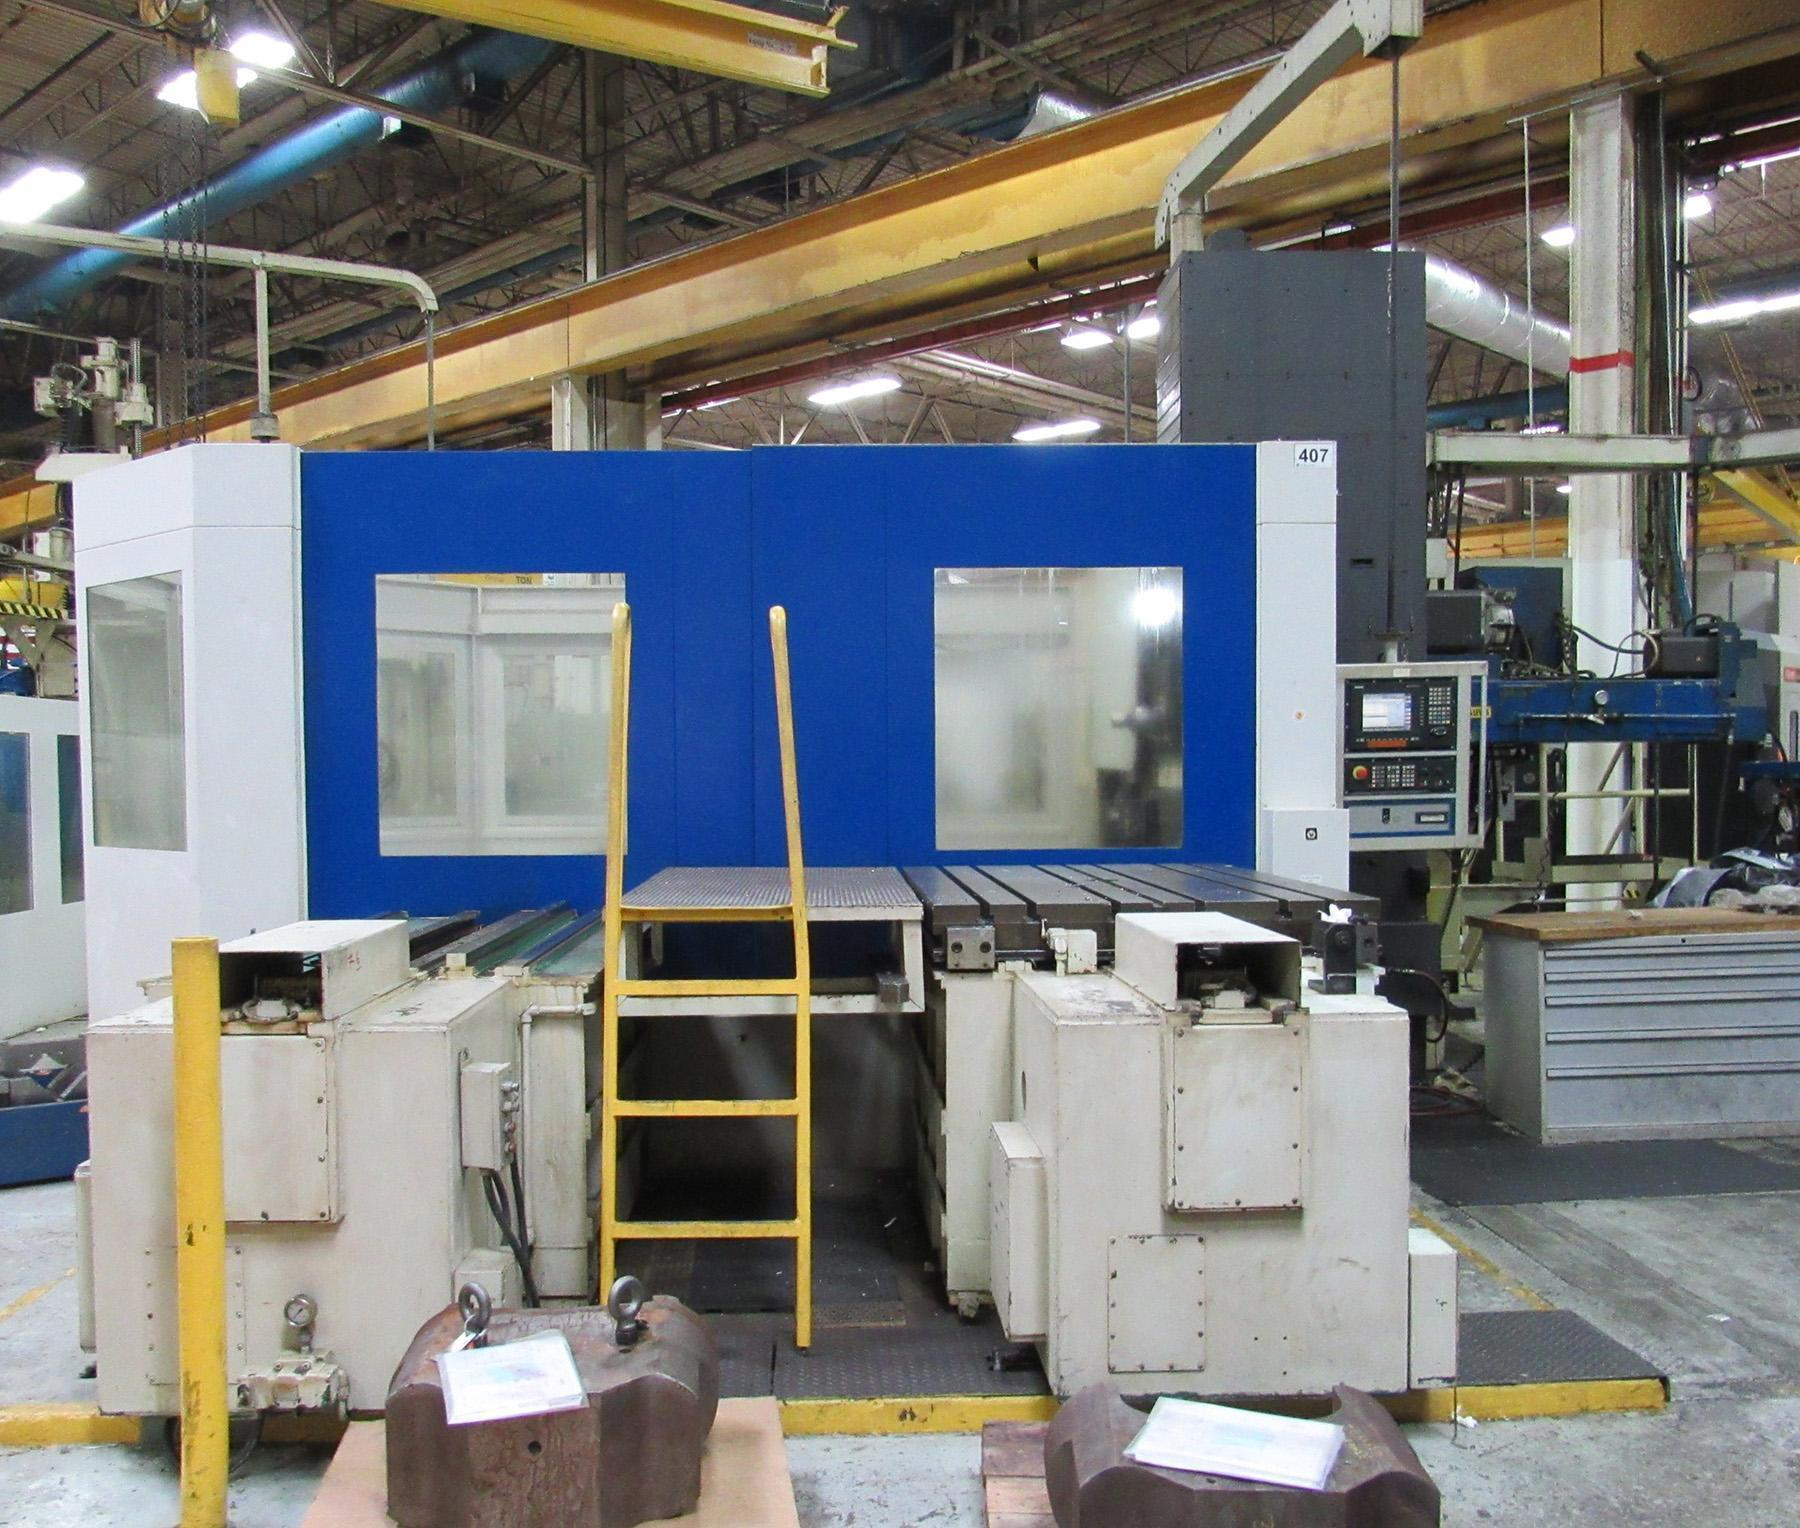 USED, GIDDINGS & LEWIS MODEL G60-T CNC TABLE TYPE HORIZONTAL BORING MILL